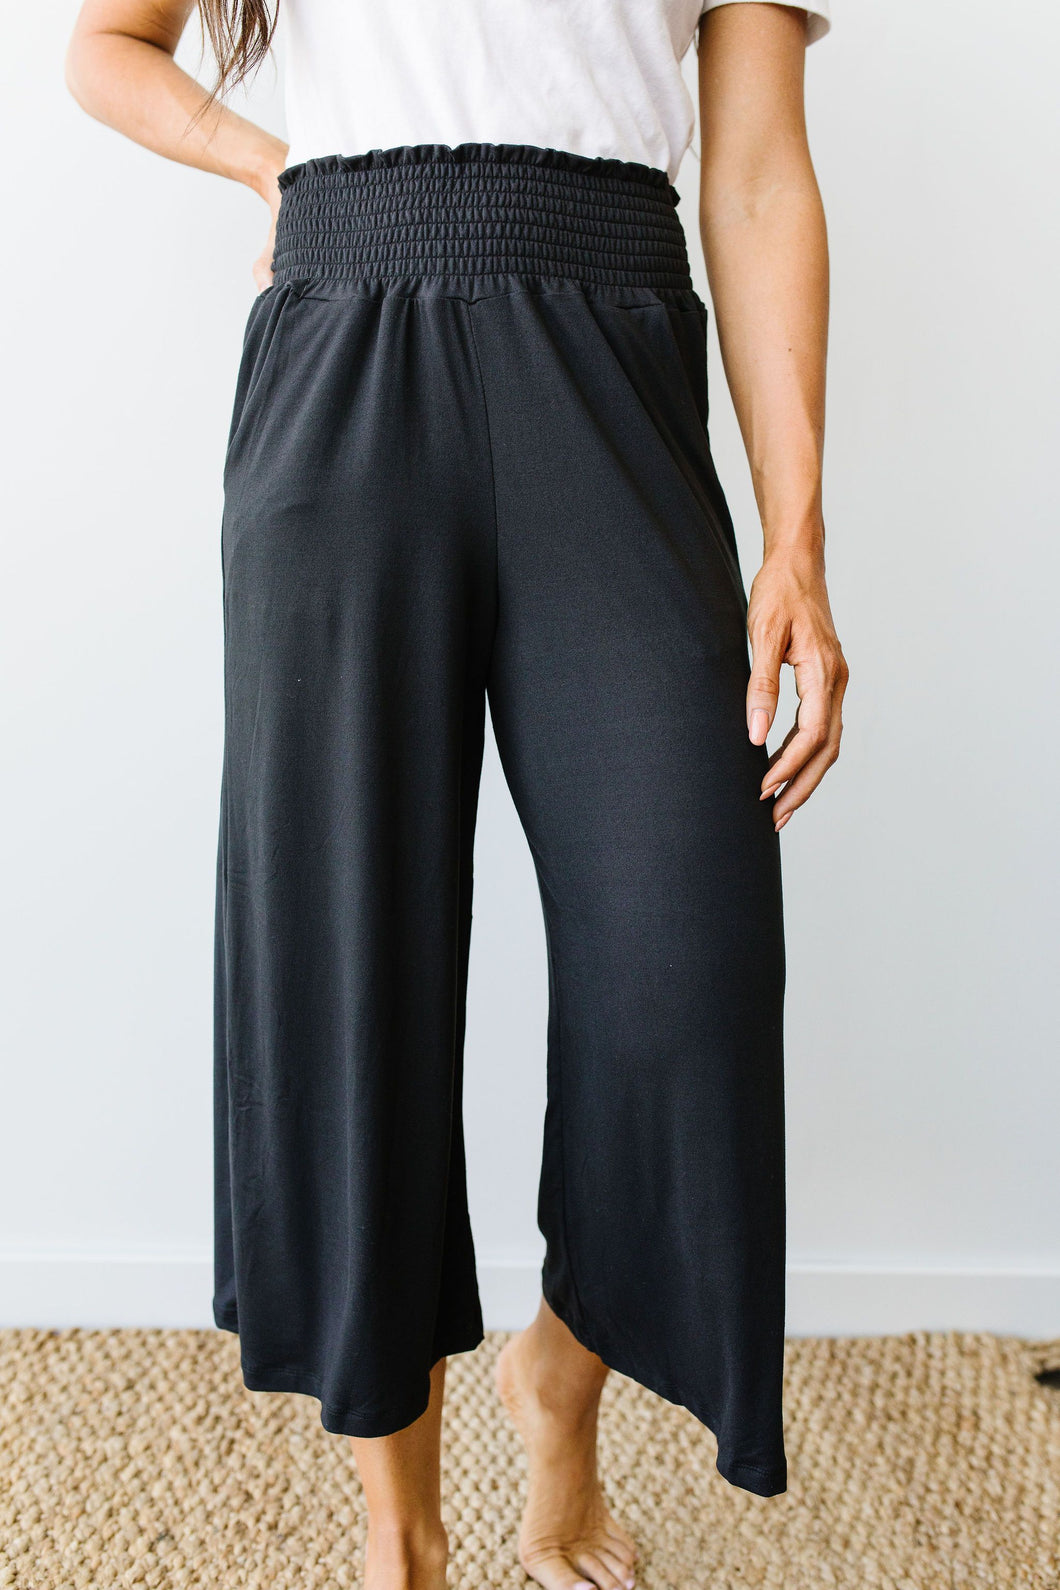 Zoe Gaucho Pant Black - SAMPLE - Smith & Vena Online Boutique